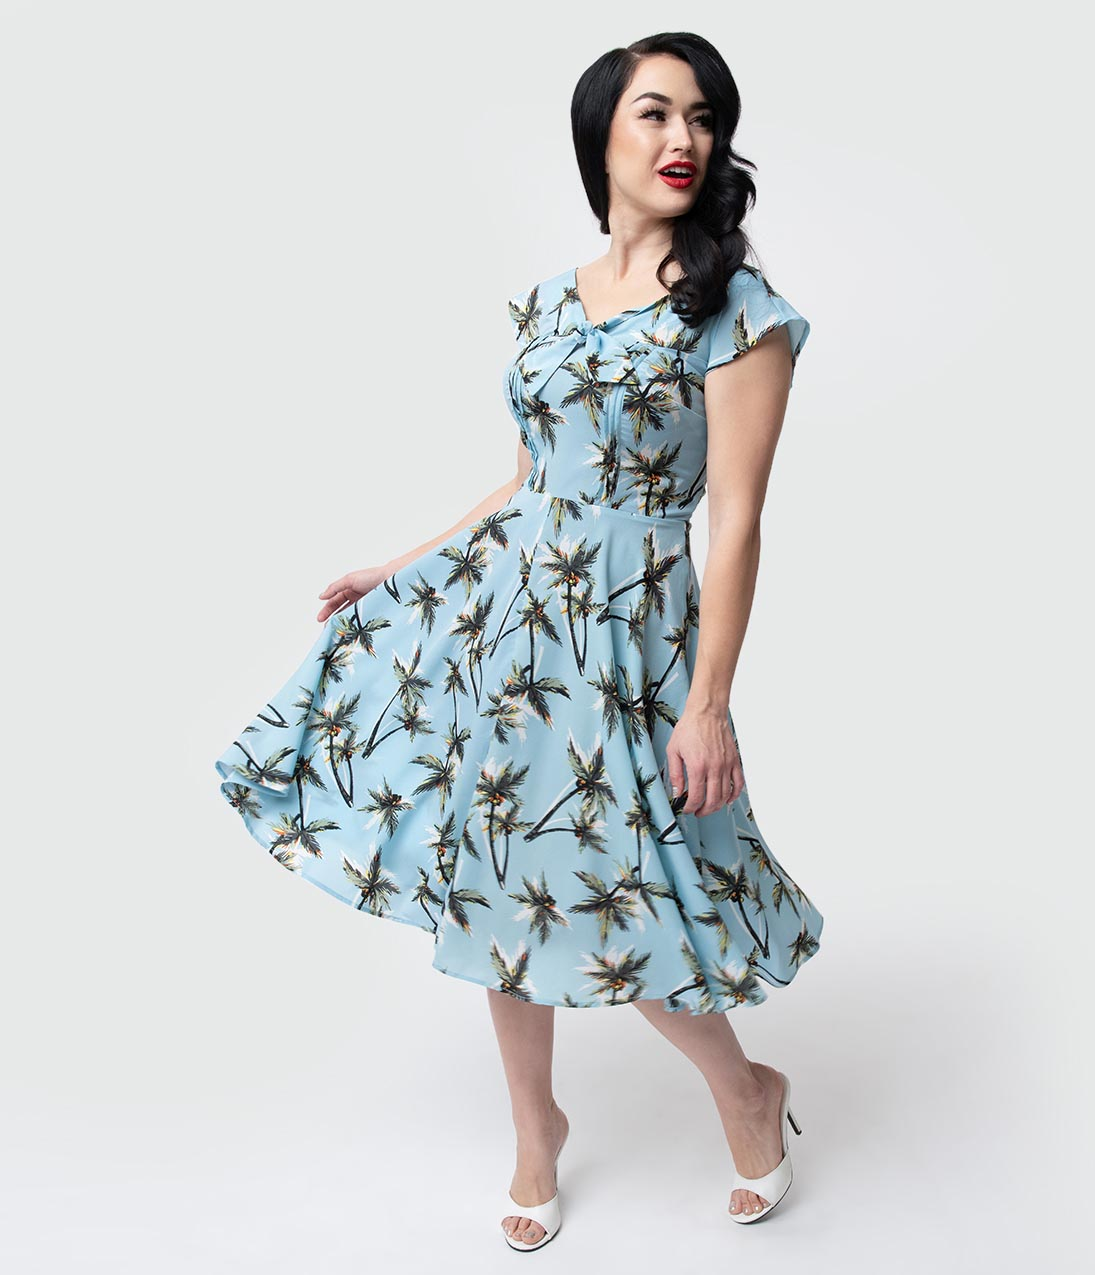 Swing Dance Clothing You Can Dance In Unique Vintage 1940S Style Light Blue Palm Tree Print Havilland Dress $50.00 AT vintagedancer.com